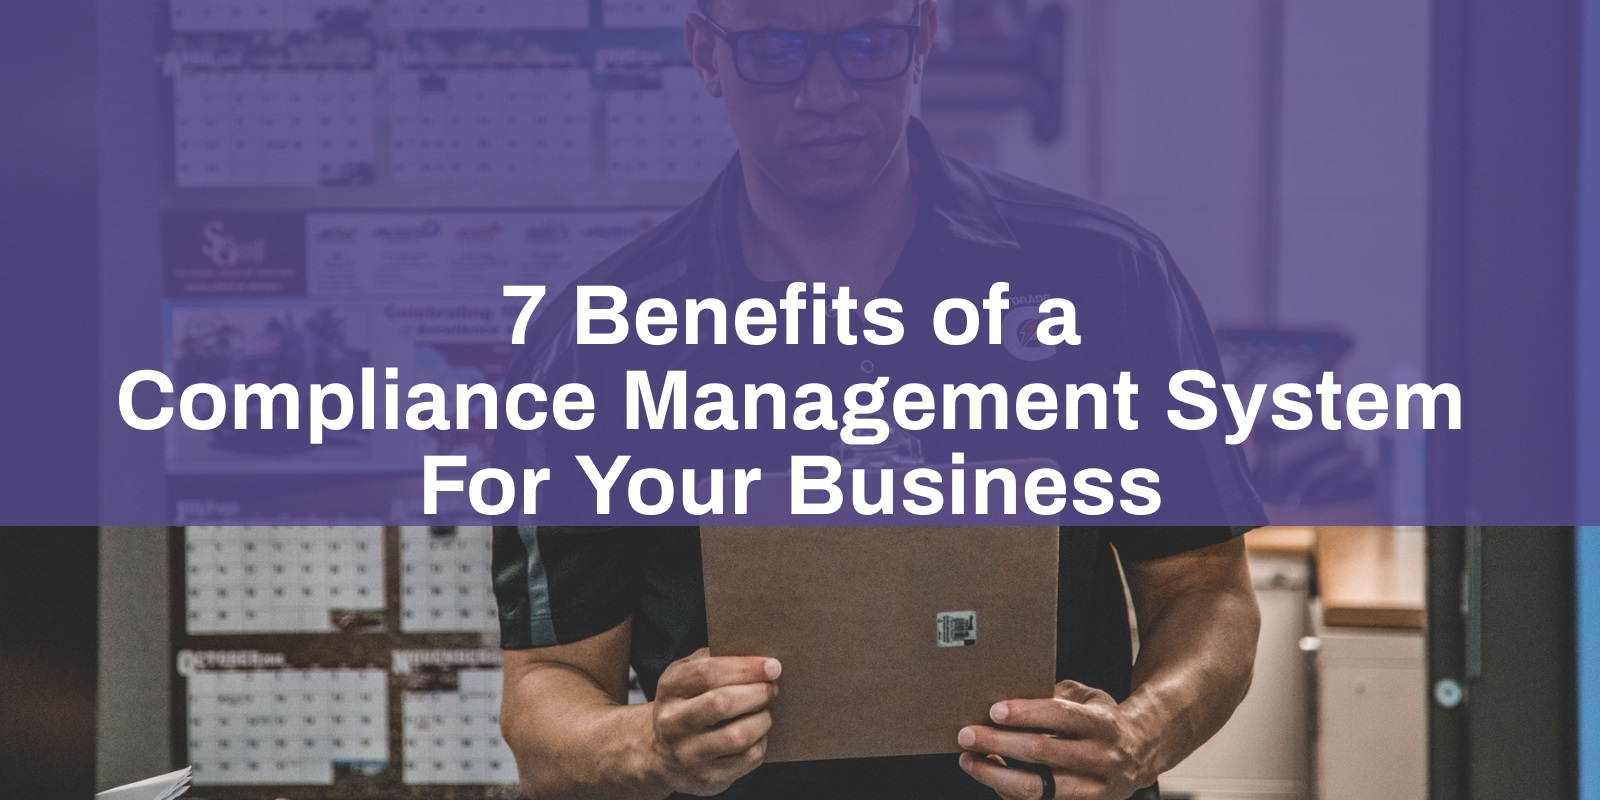 7 Benefits of a Compliance Management System For Your Business